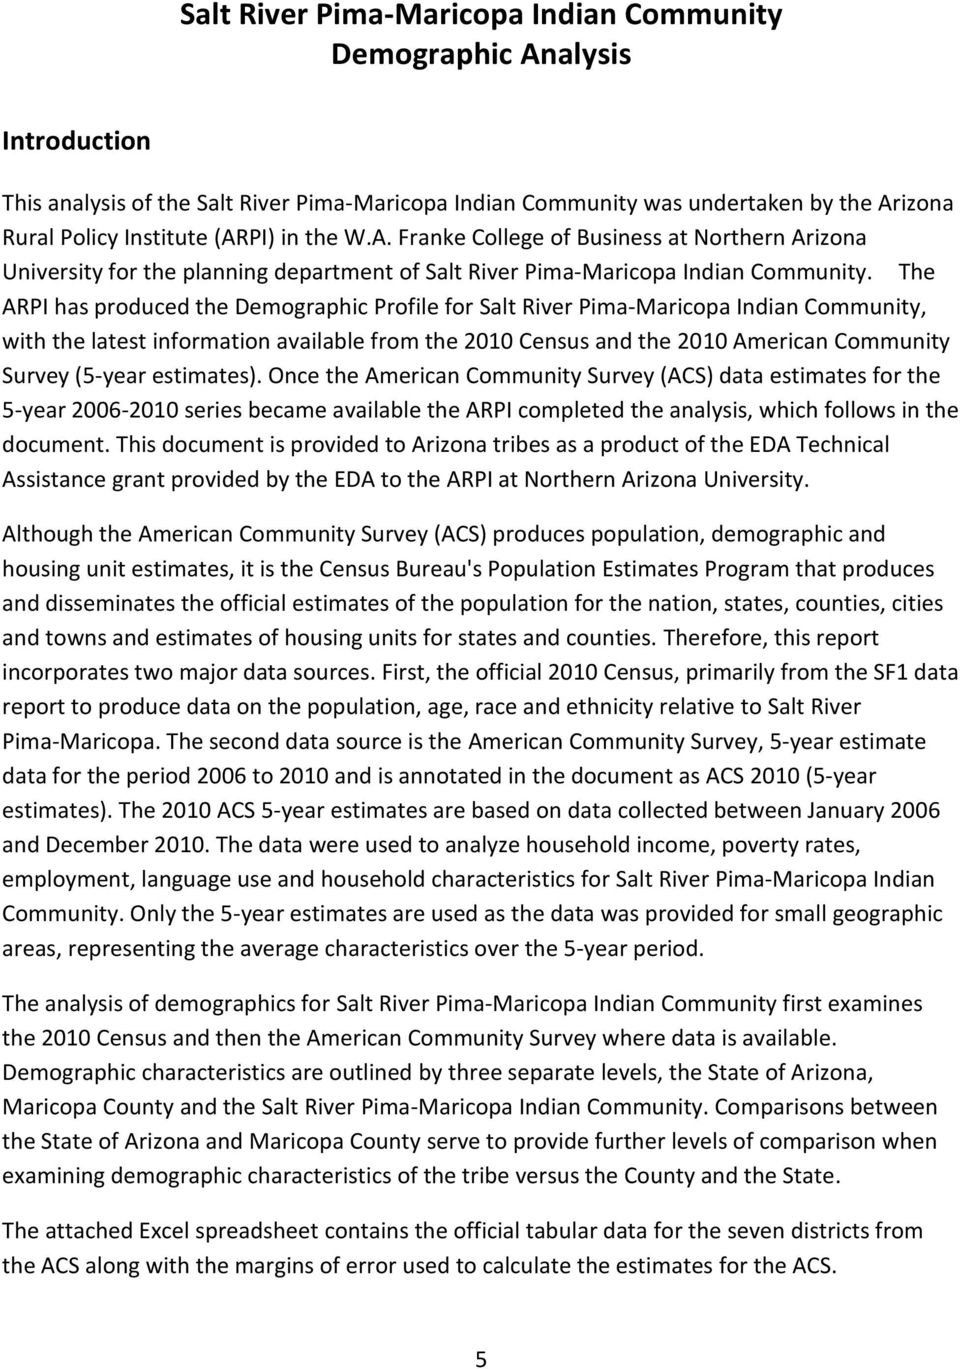 The ARPI has produced the Demographic Profile for Salt River Pima-Maricopa Indian Community, with the latest information available from the 2010 Census and the 2010 American Community Survey (5-year